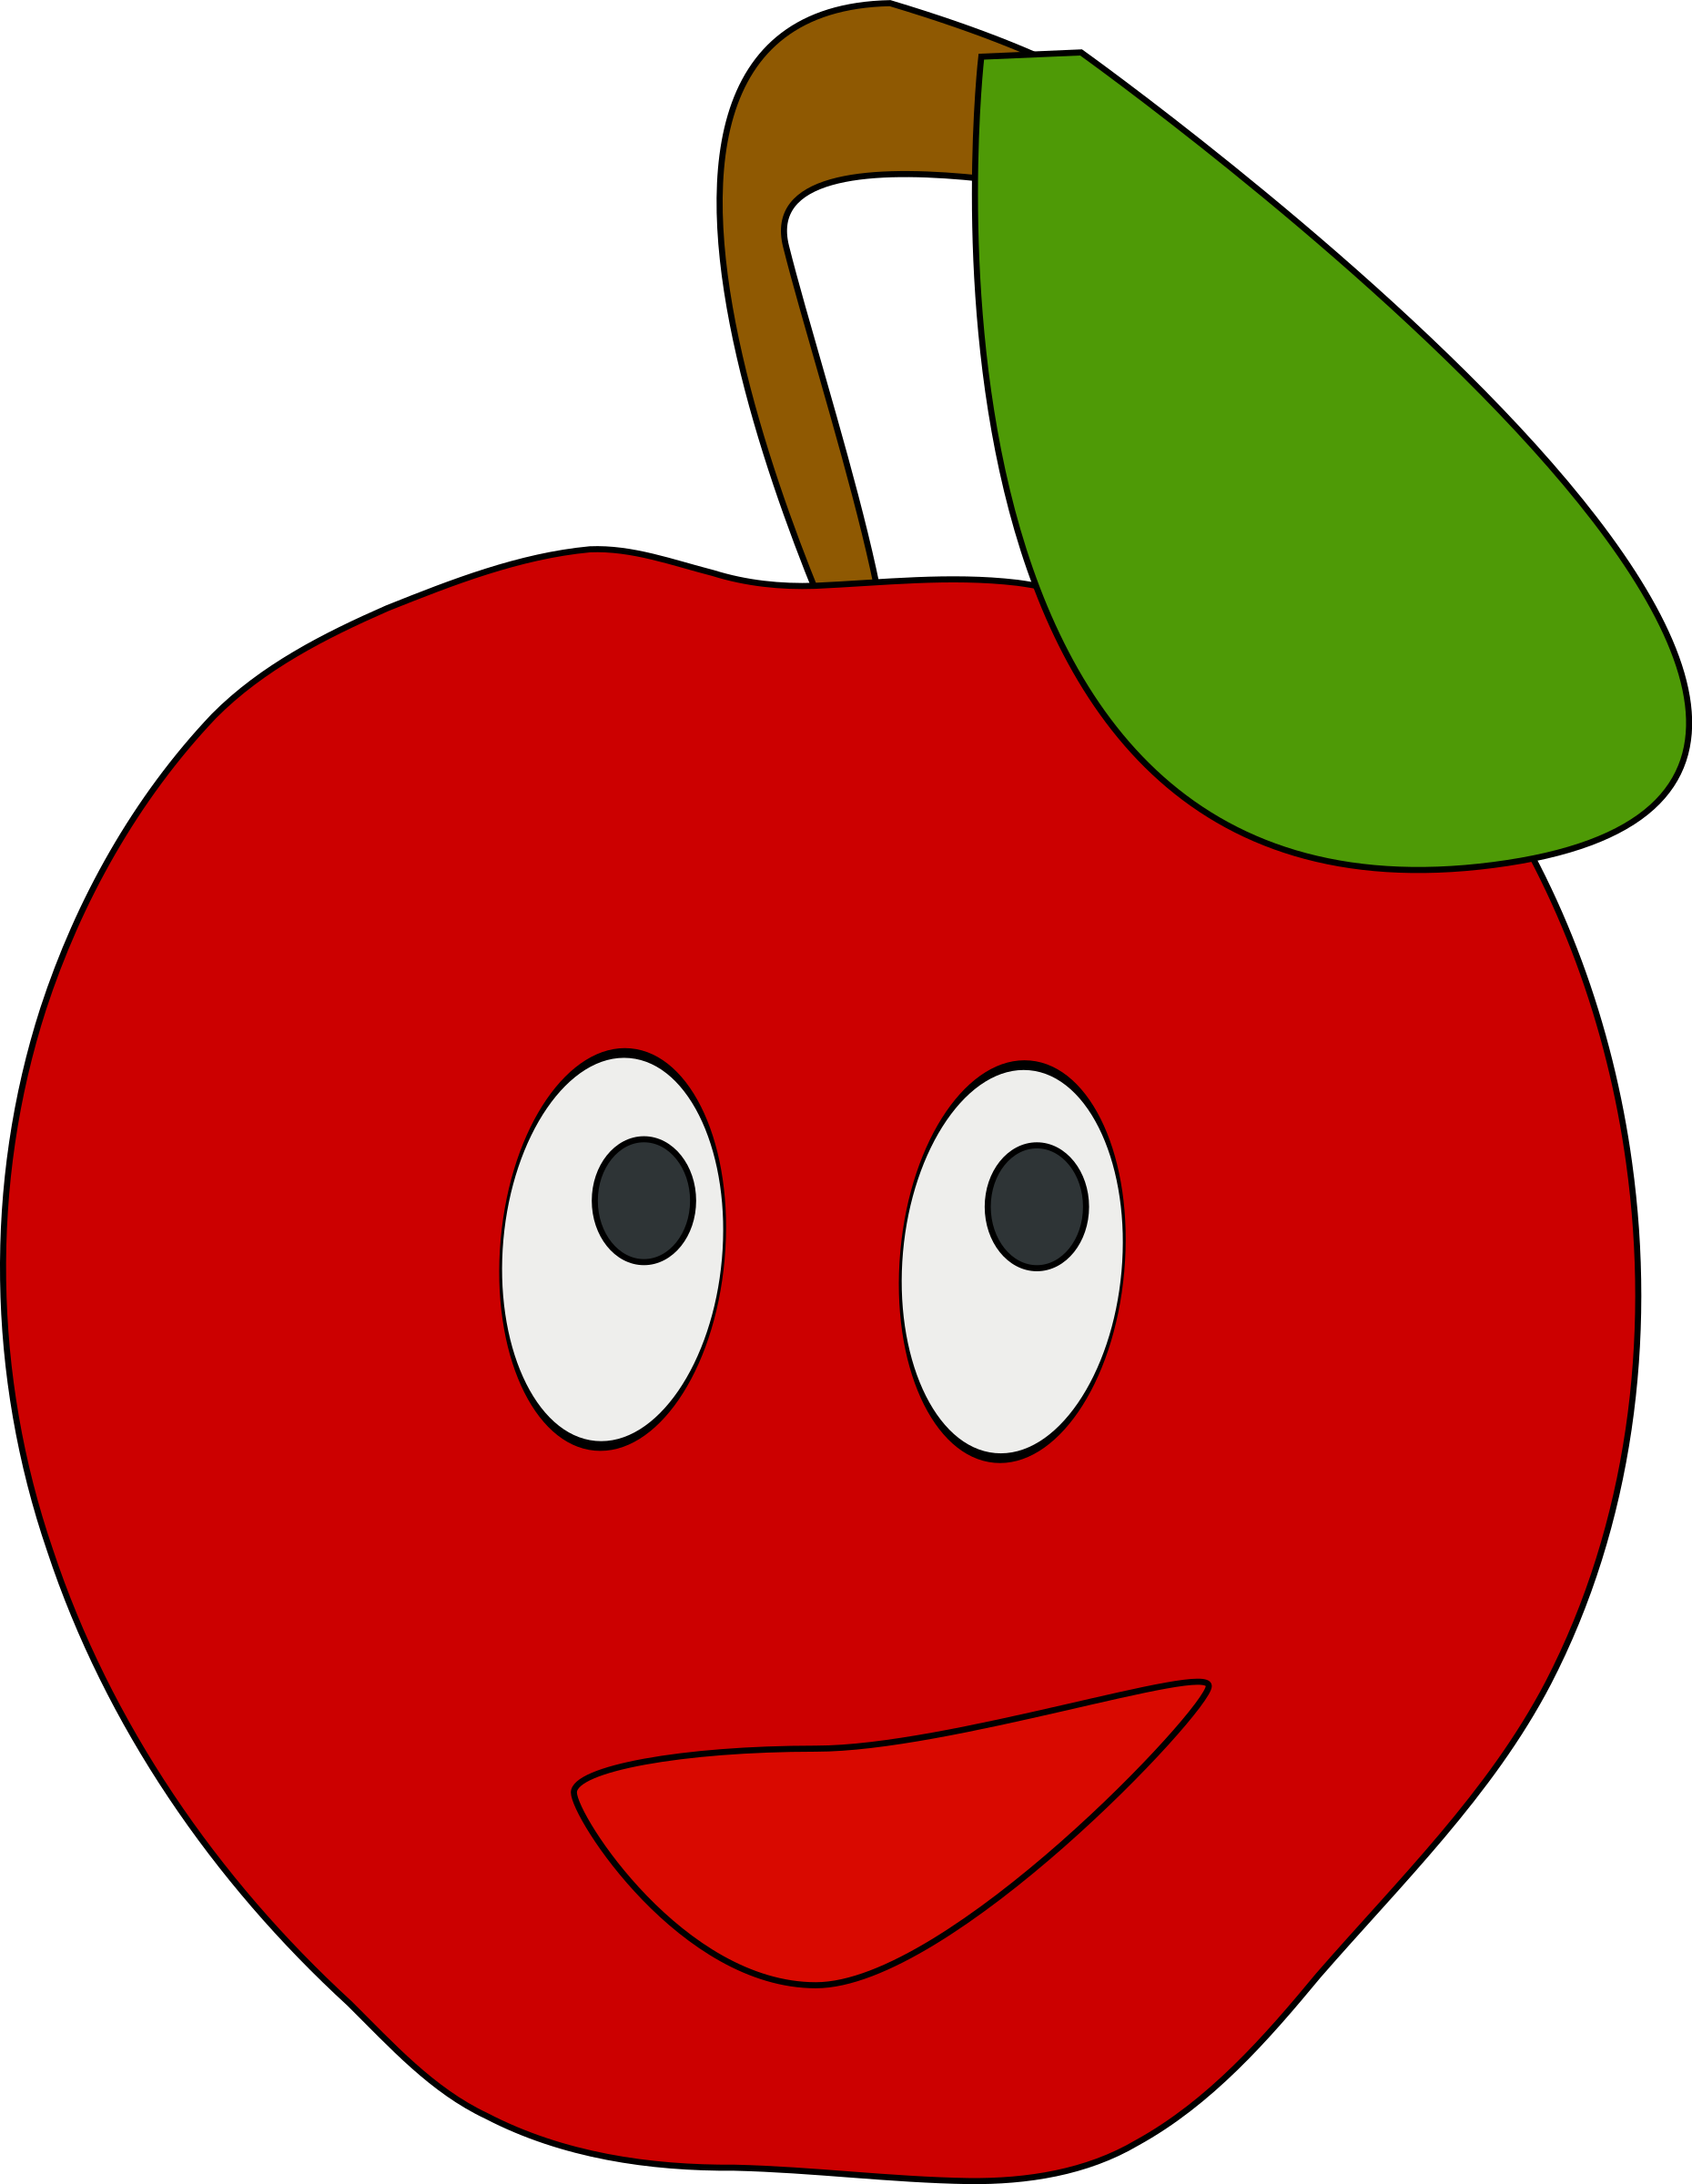 Apple gif clipart vector freeuse download Apple Emoji Clipart at GetDrawings.com | Free for personal use Apple ... vector freeuse download